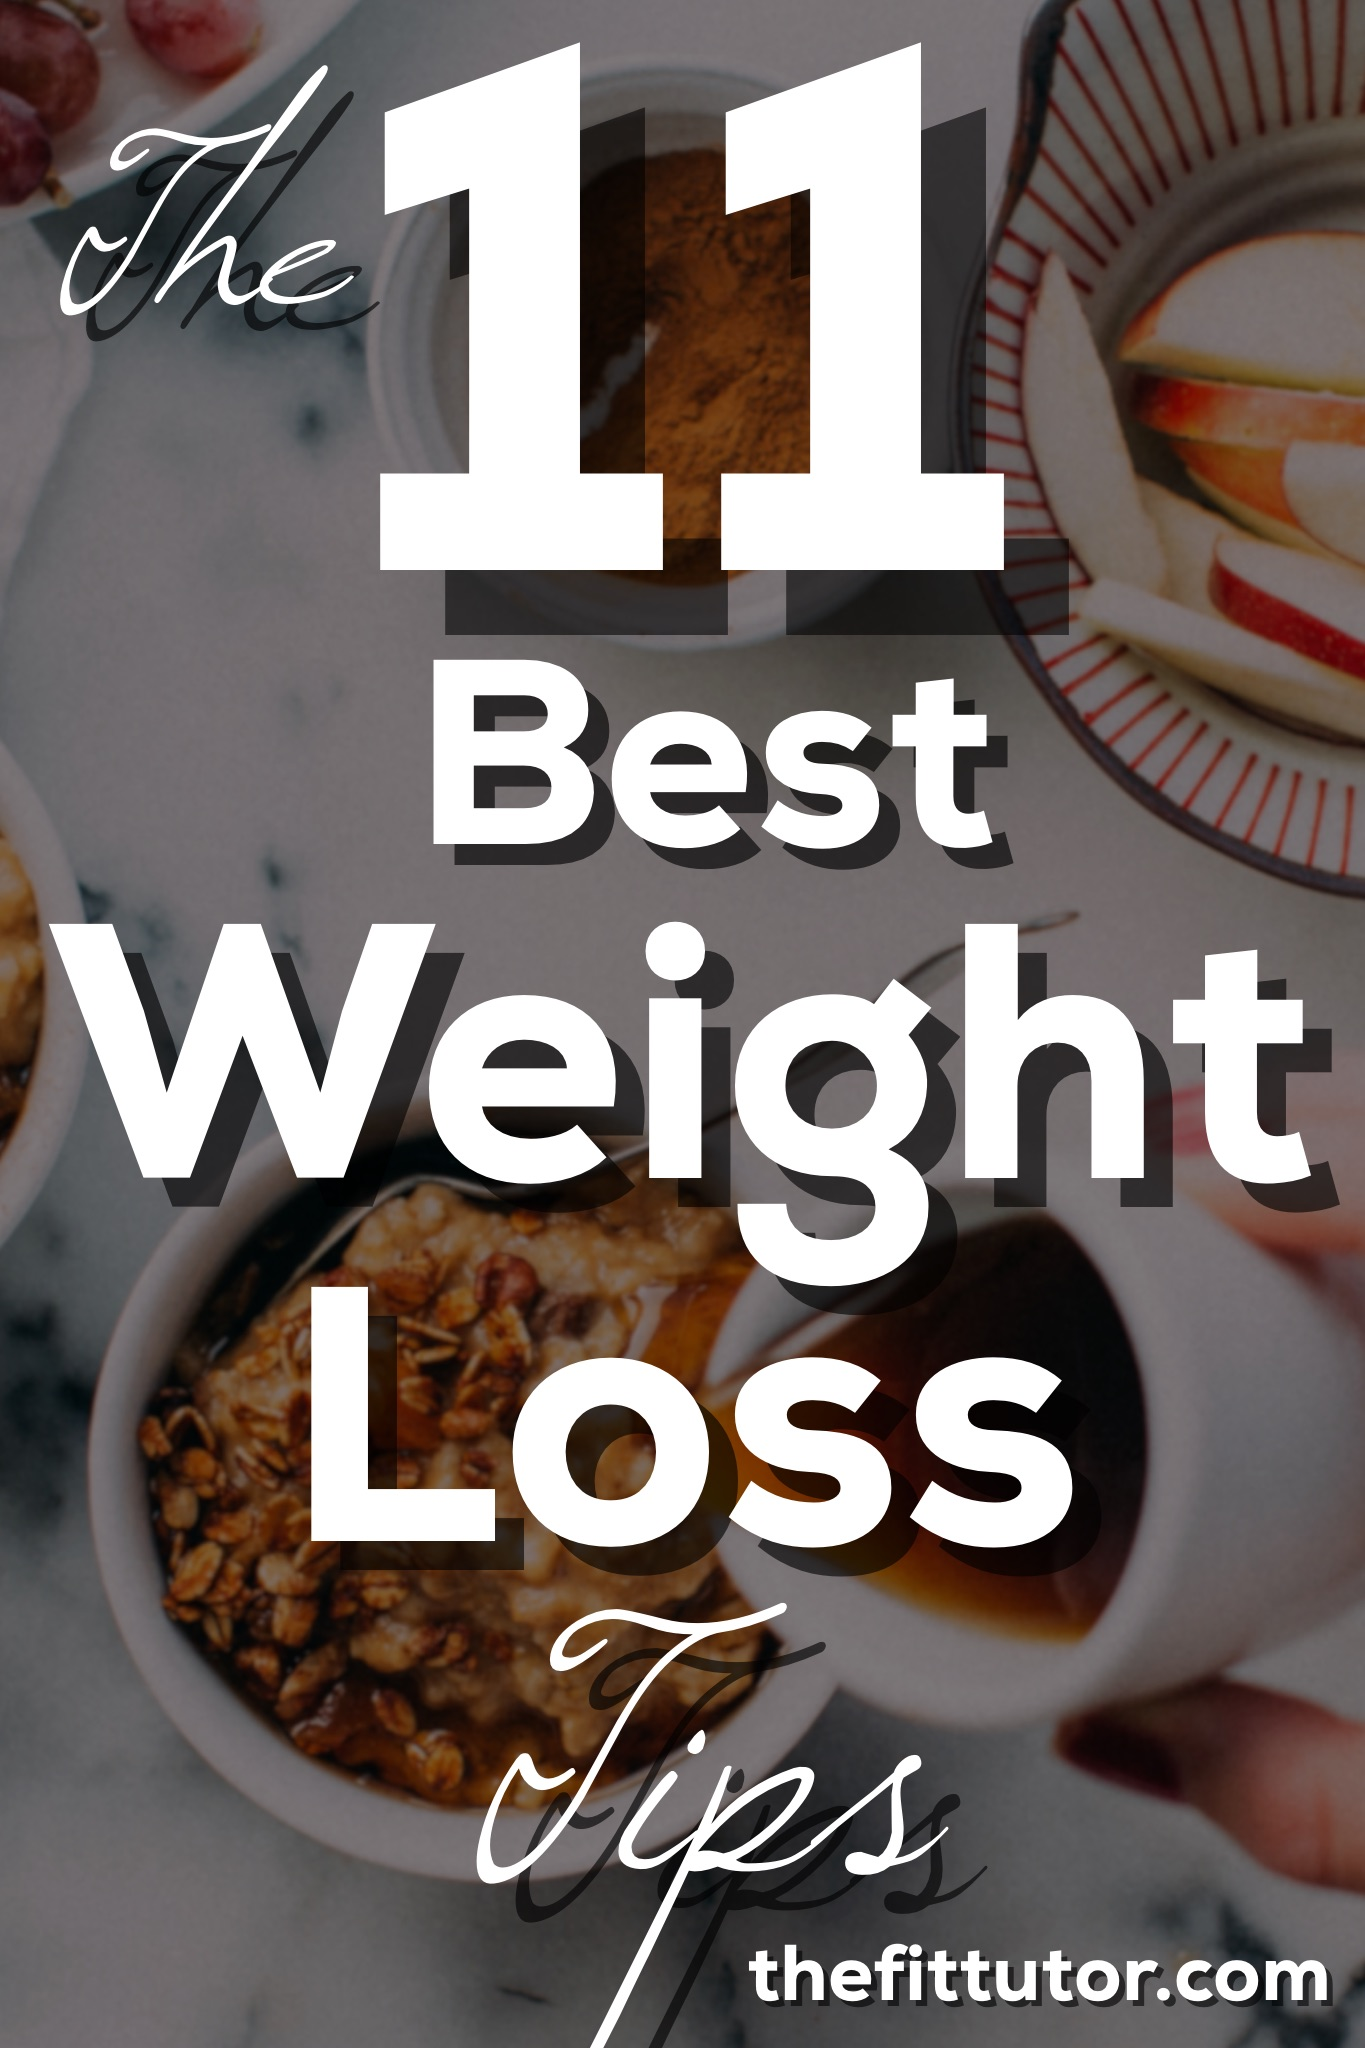 Check out the Top 11 Best Weight Loss Tips from a personal trainer and nutrition coach!